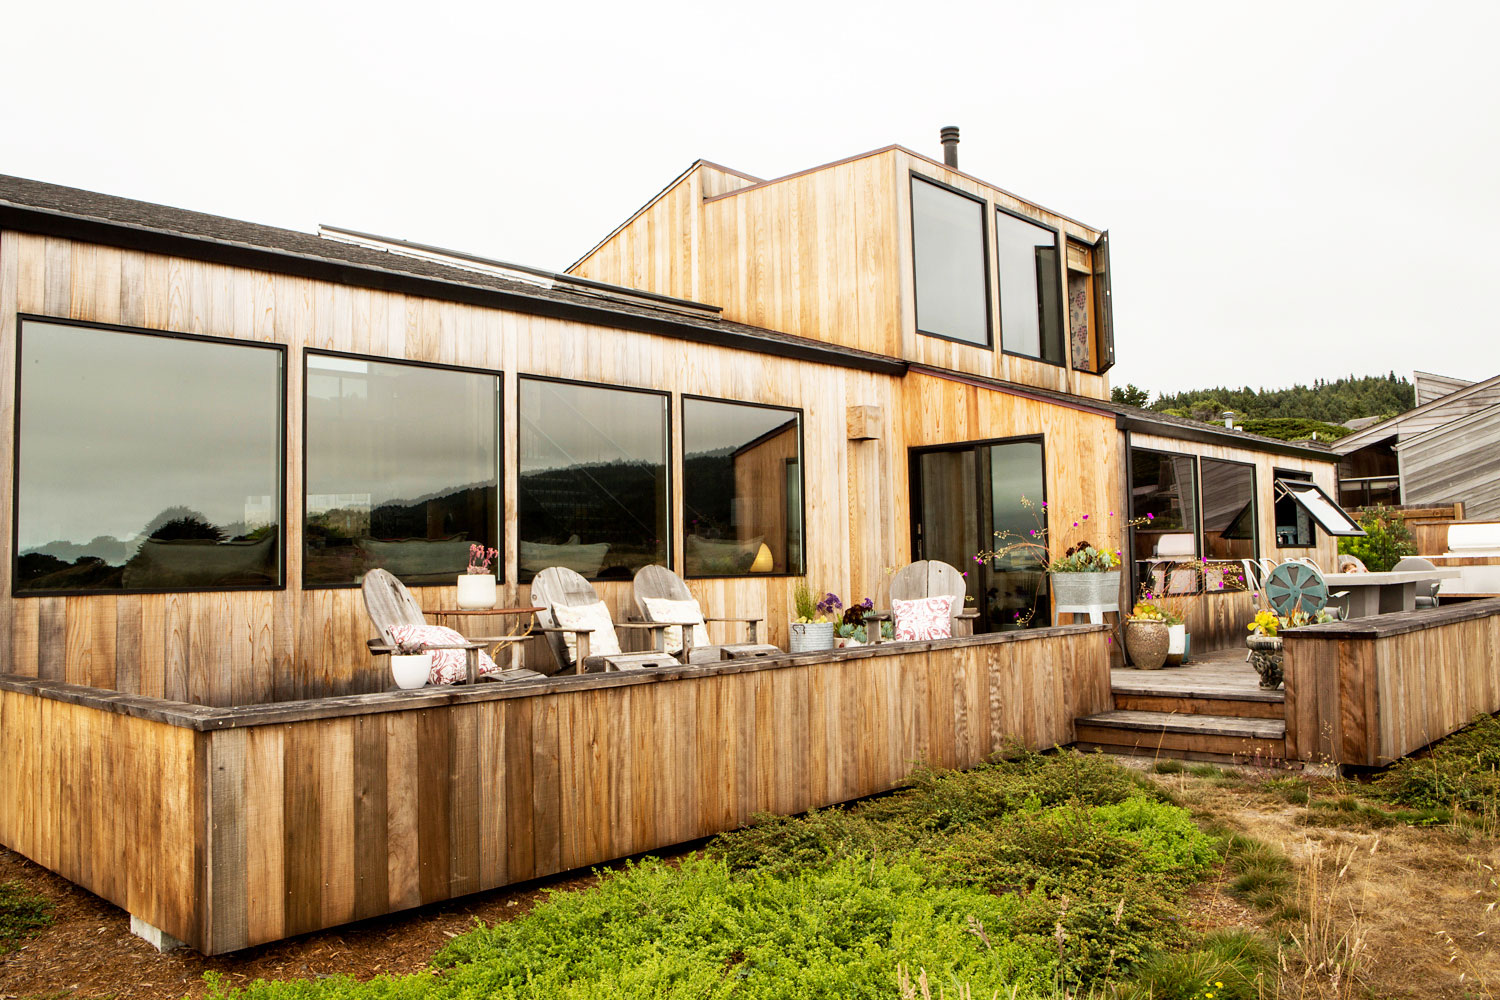 The wooden clad house has large windows